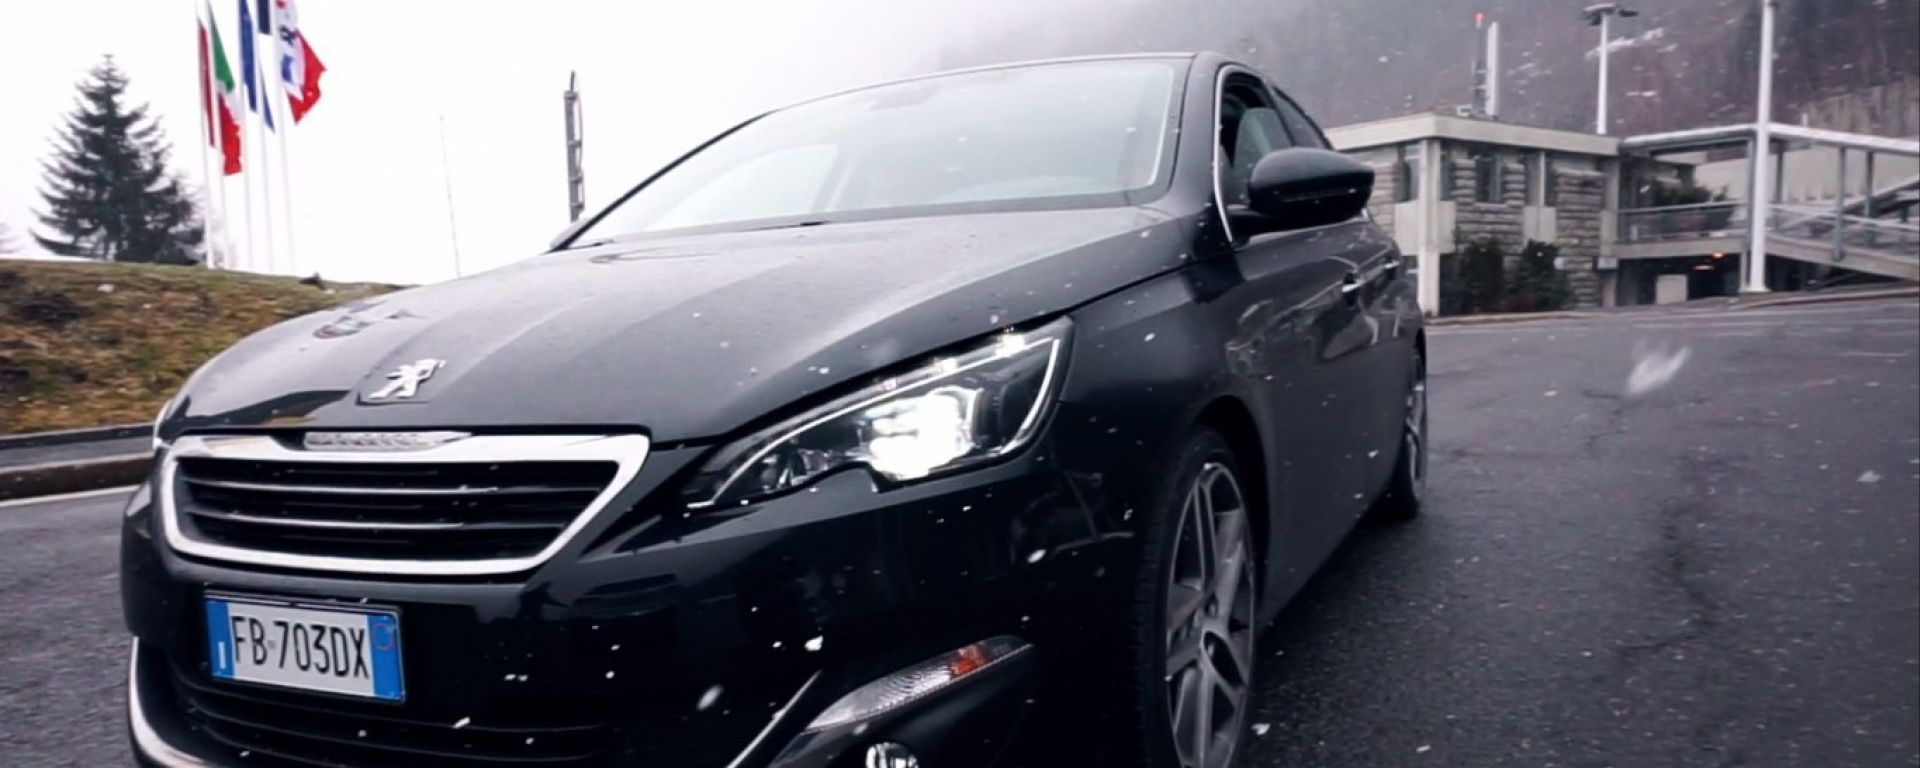 Peugeot 308 on the road: MotorBox va a Ginevra